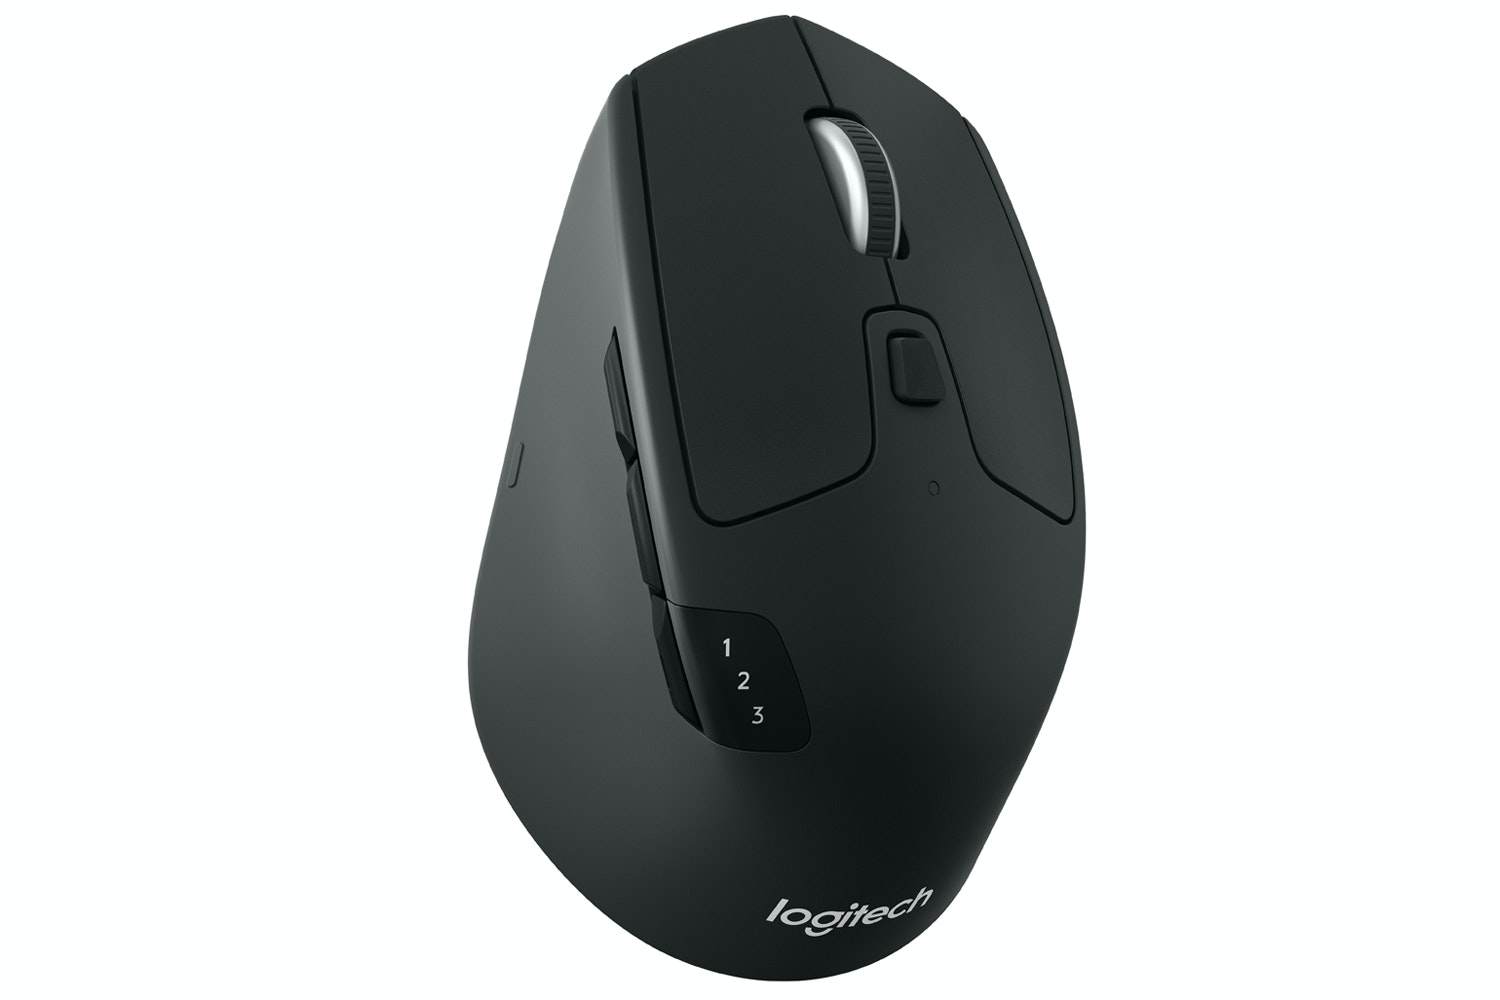 Logitech M720 Triathlon Multi-Device Wireless Mouse | Black